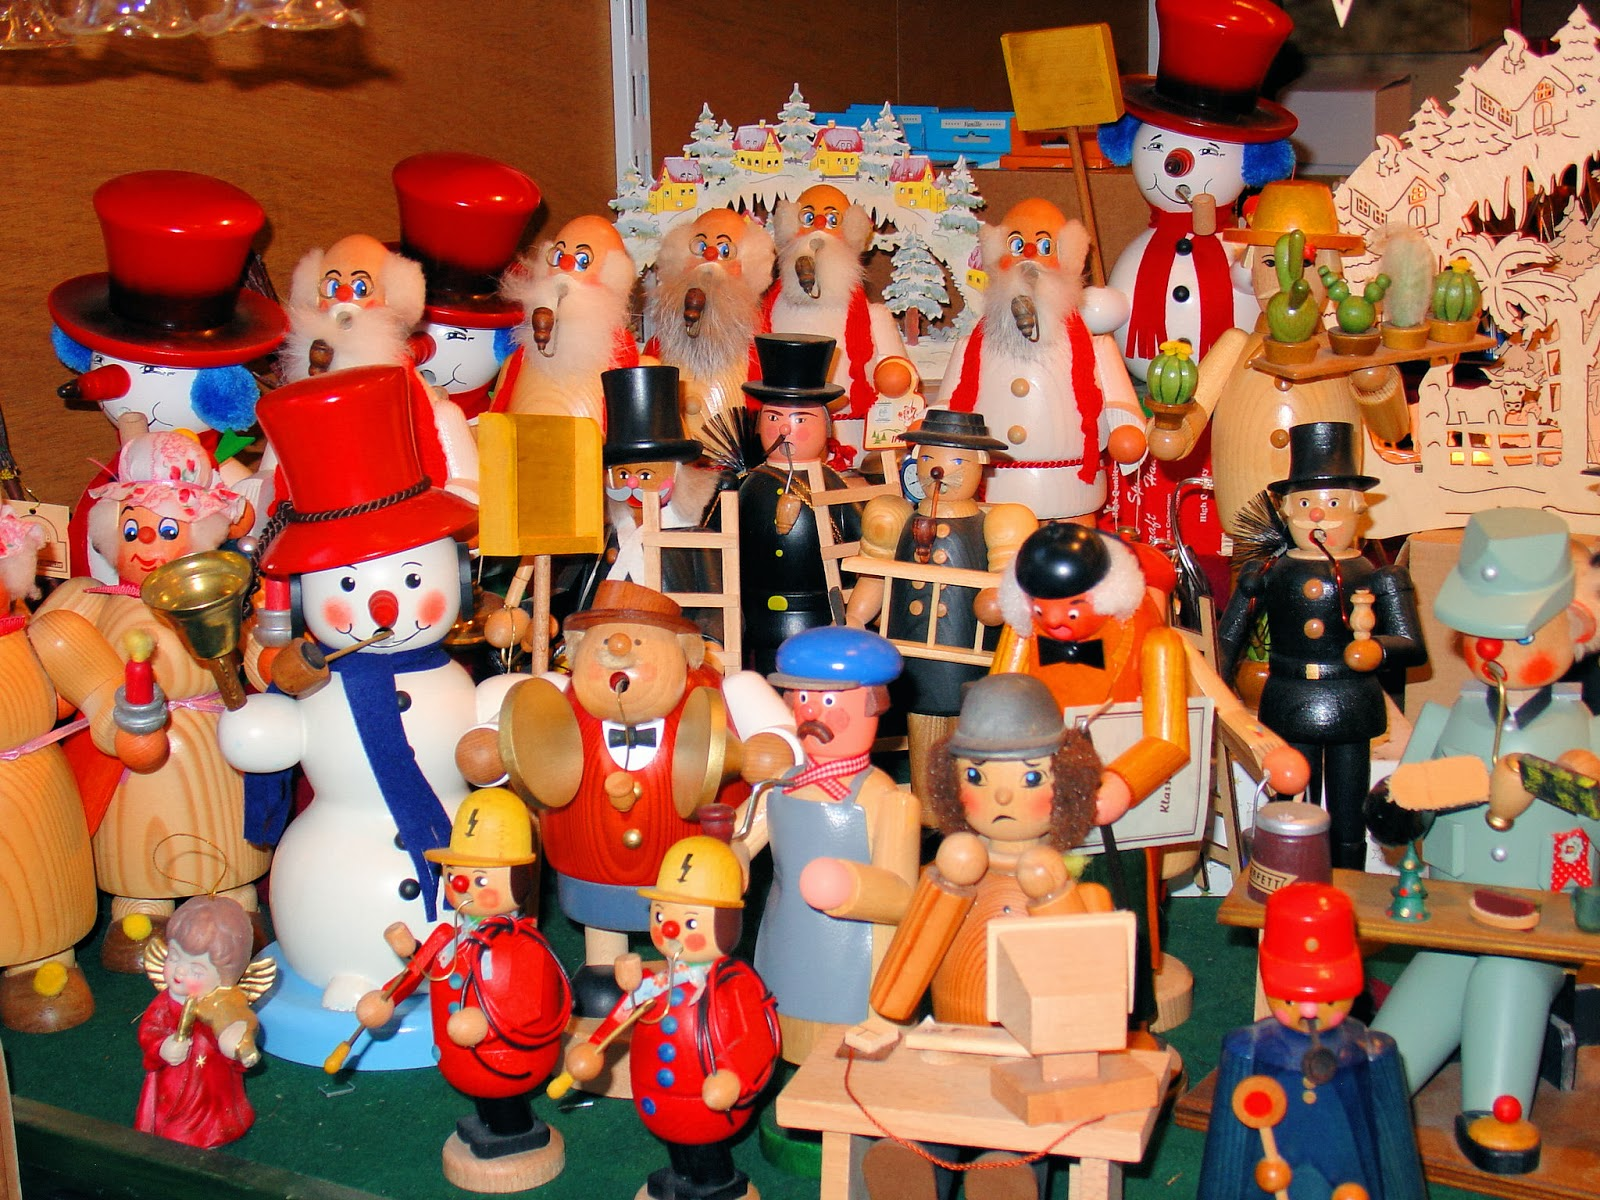 A Christmas trove of handcrafted gifts at the Salzburg Christmas Market.